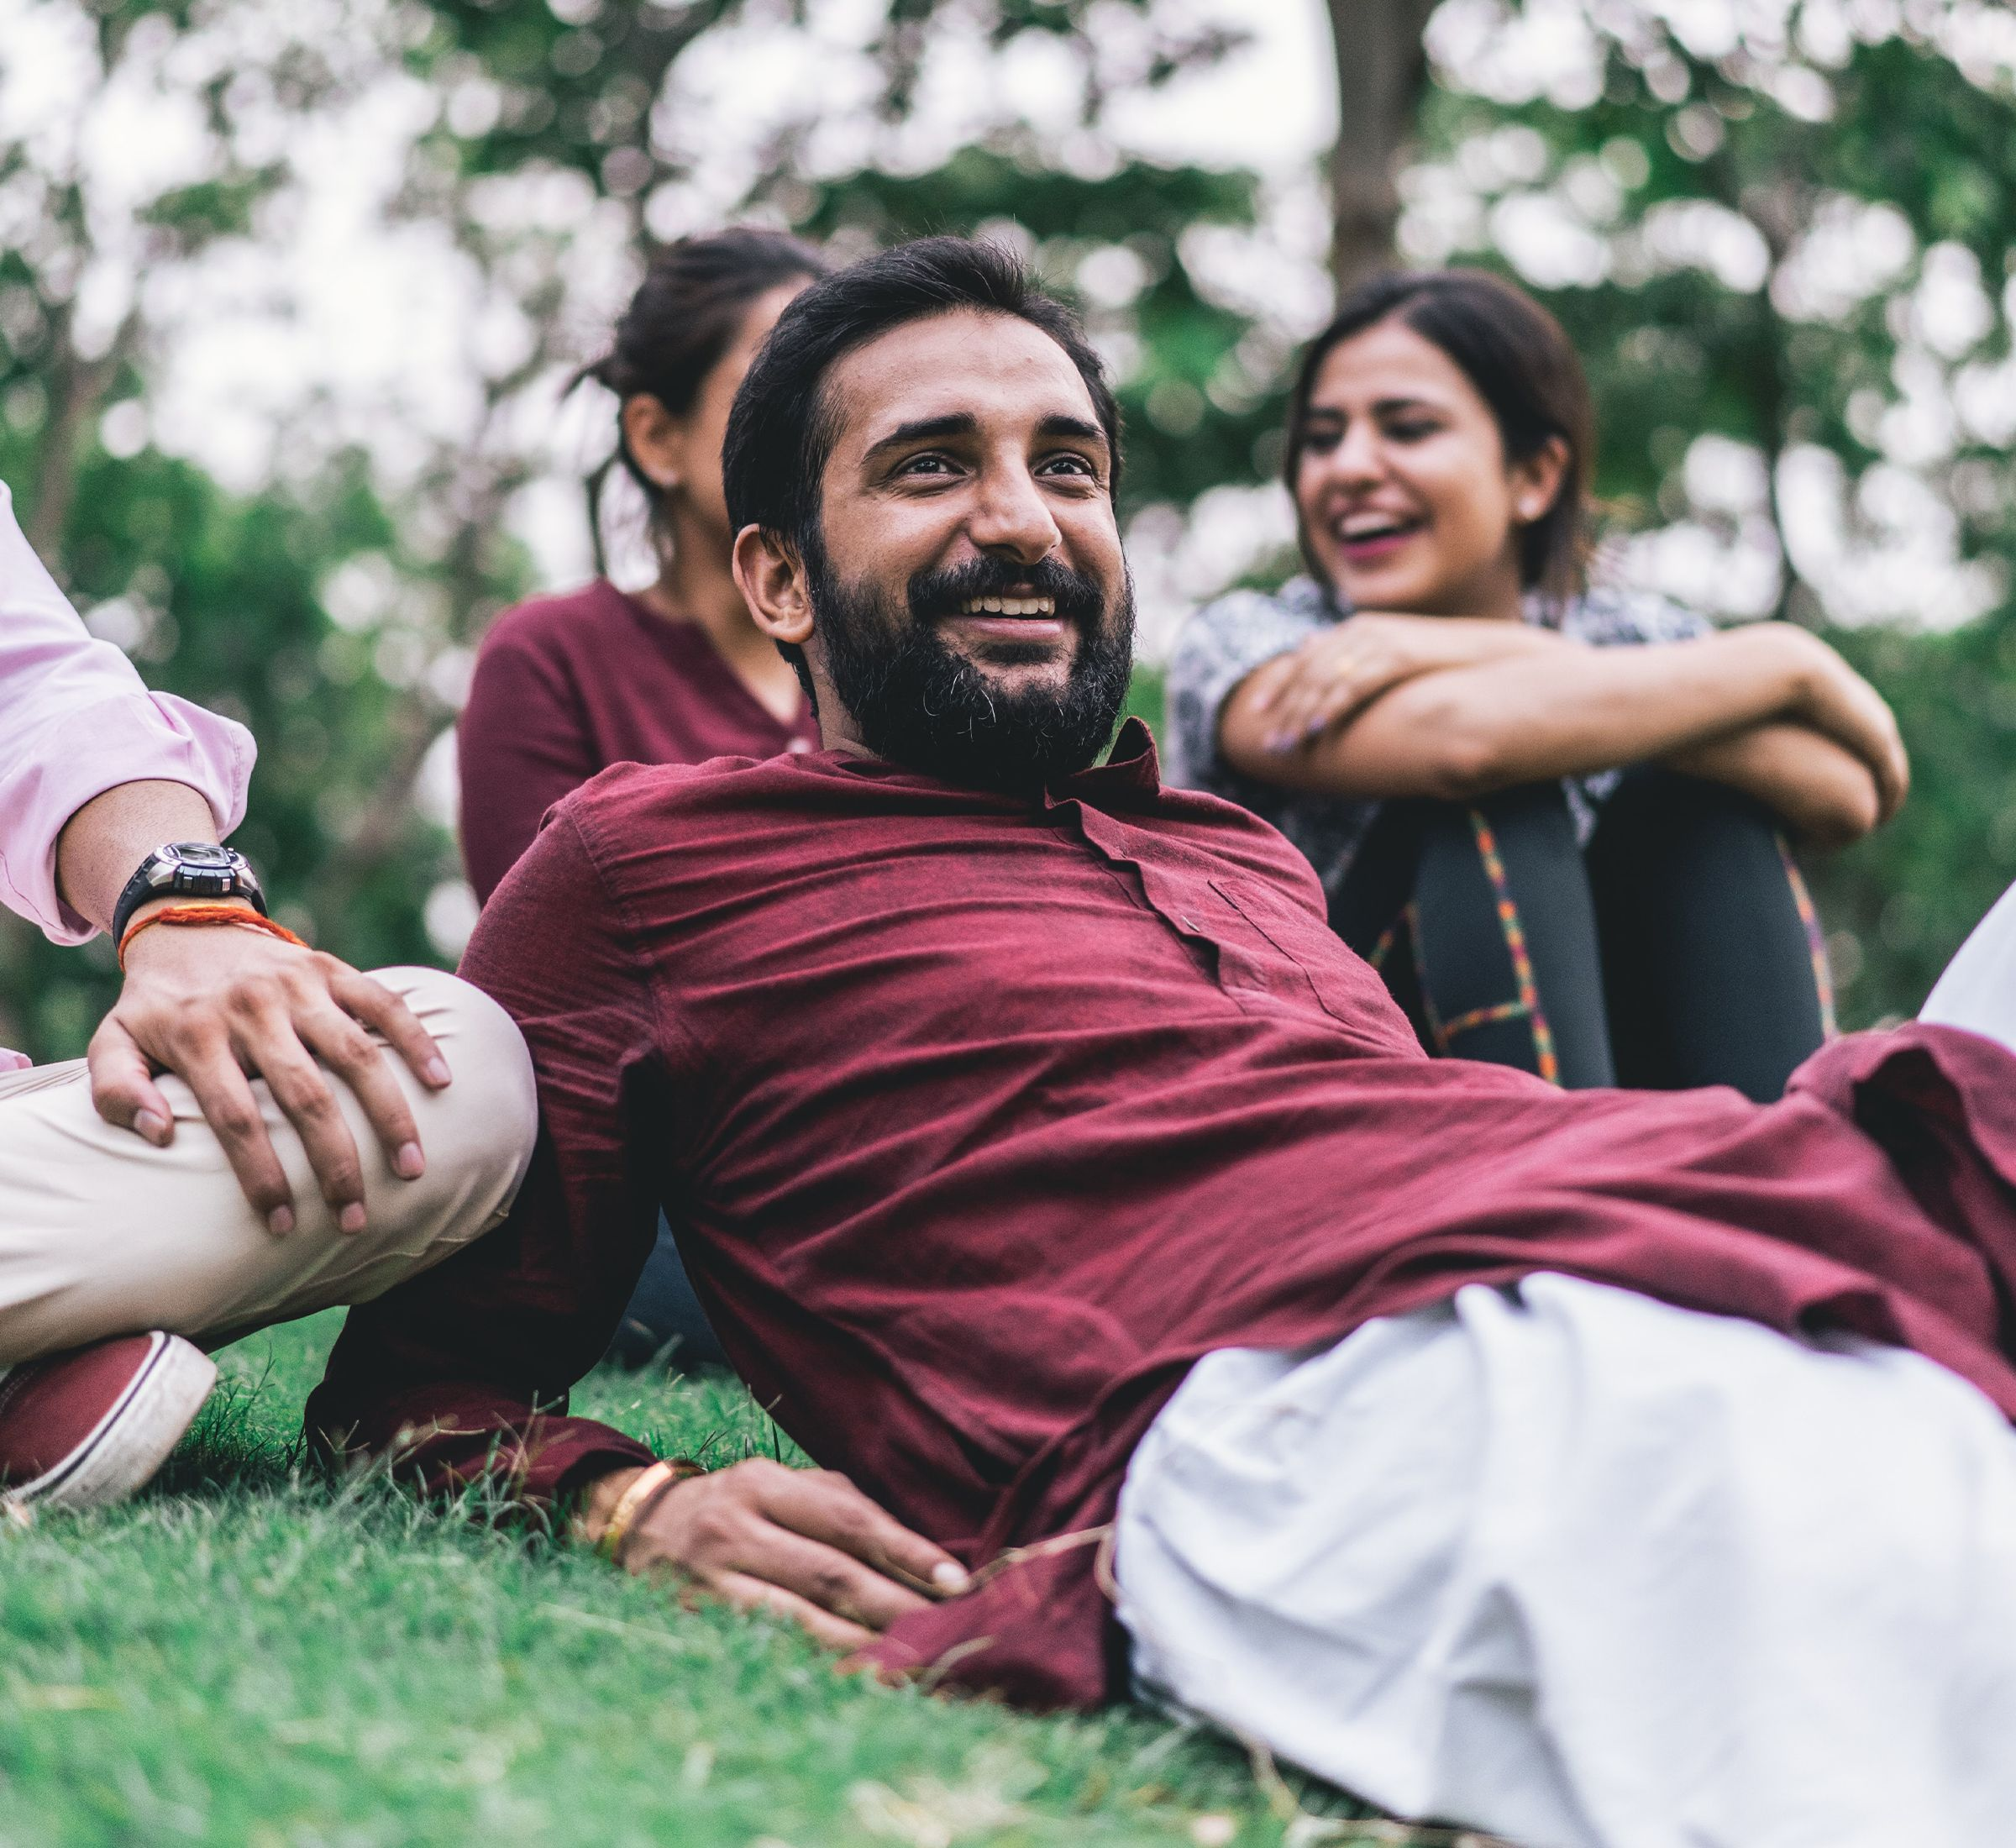 happy man on grass with family